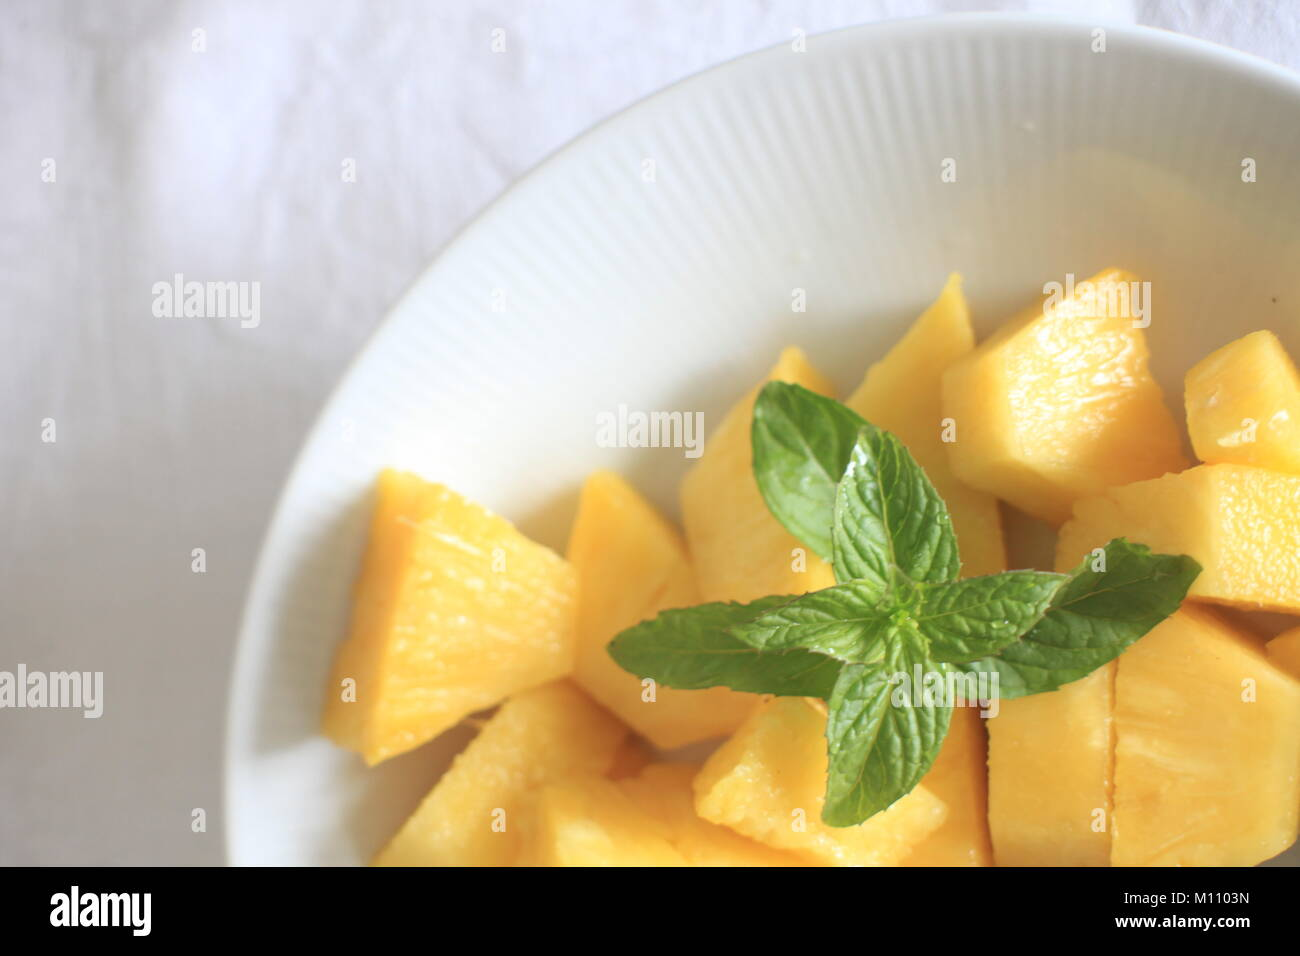 plate filled mango  - Stock Image